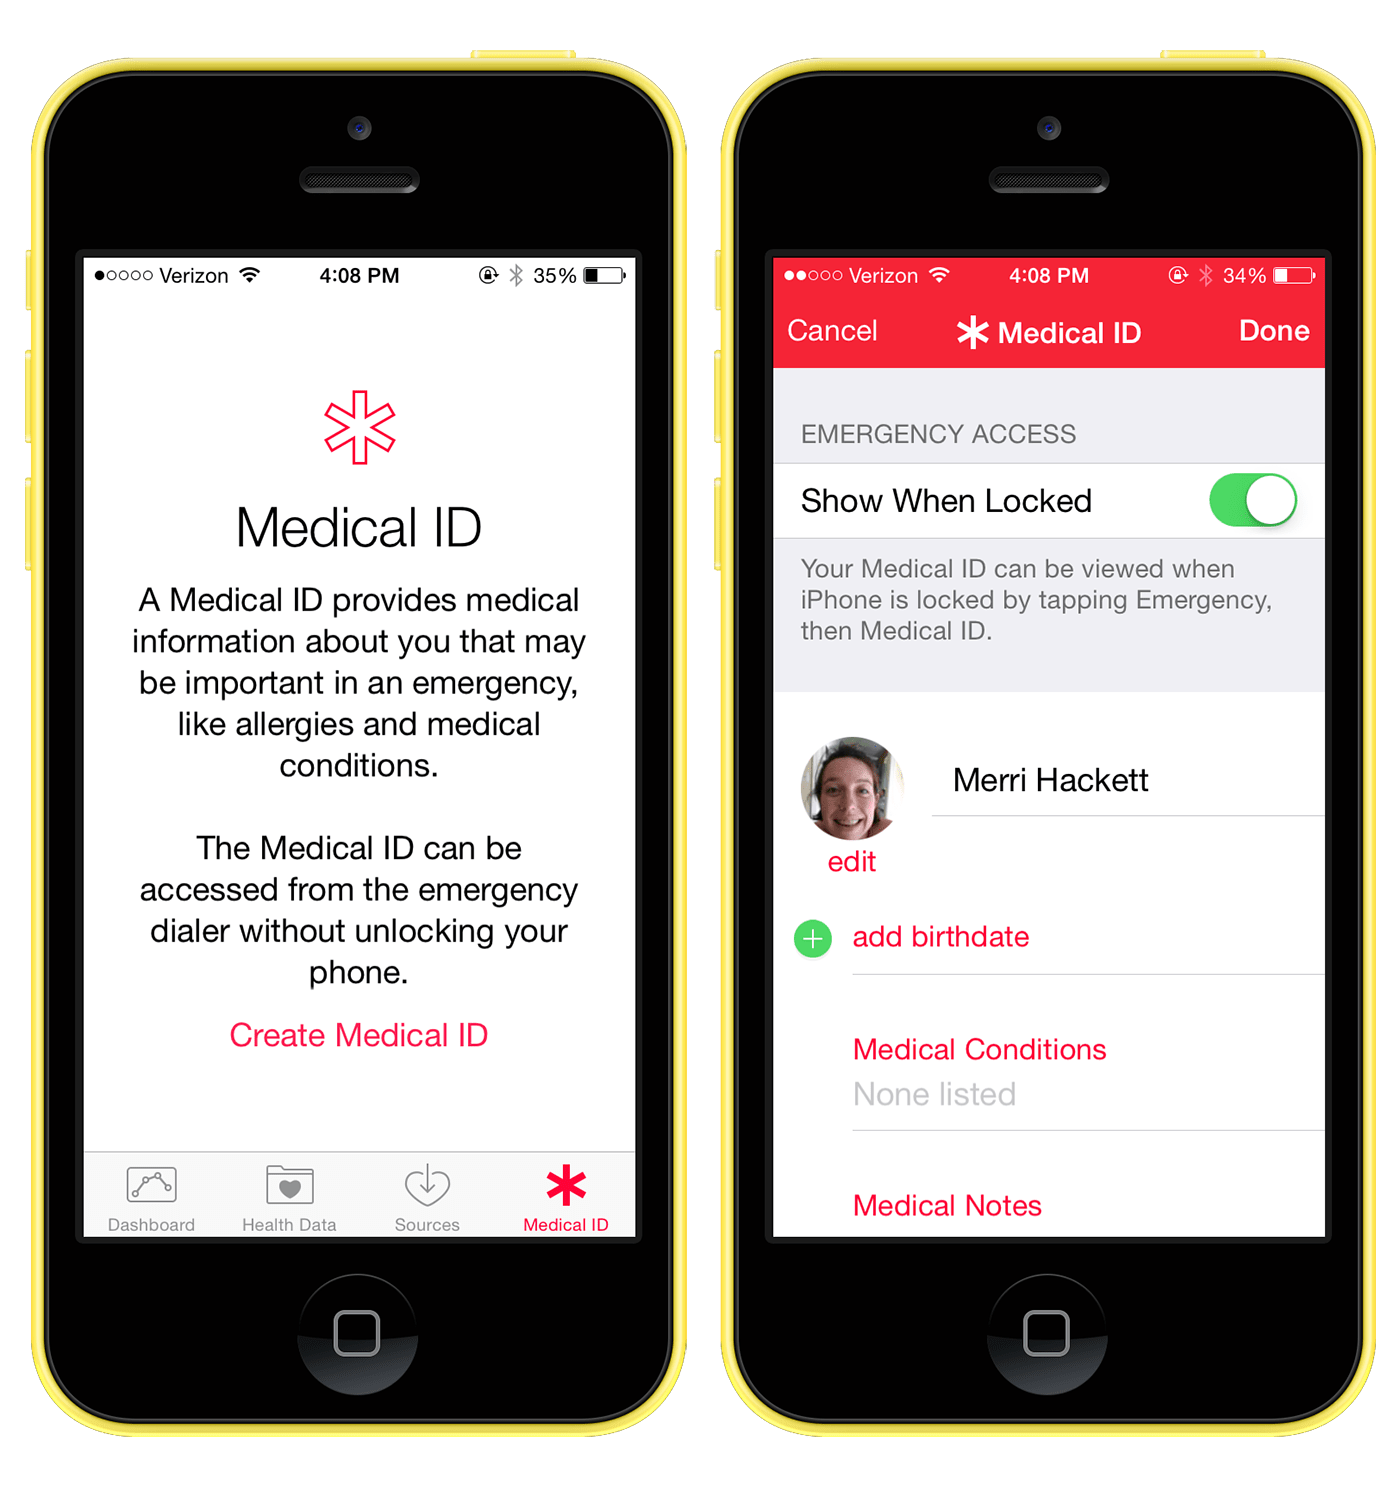 Medical ID in iOS 8